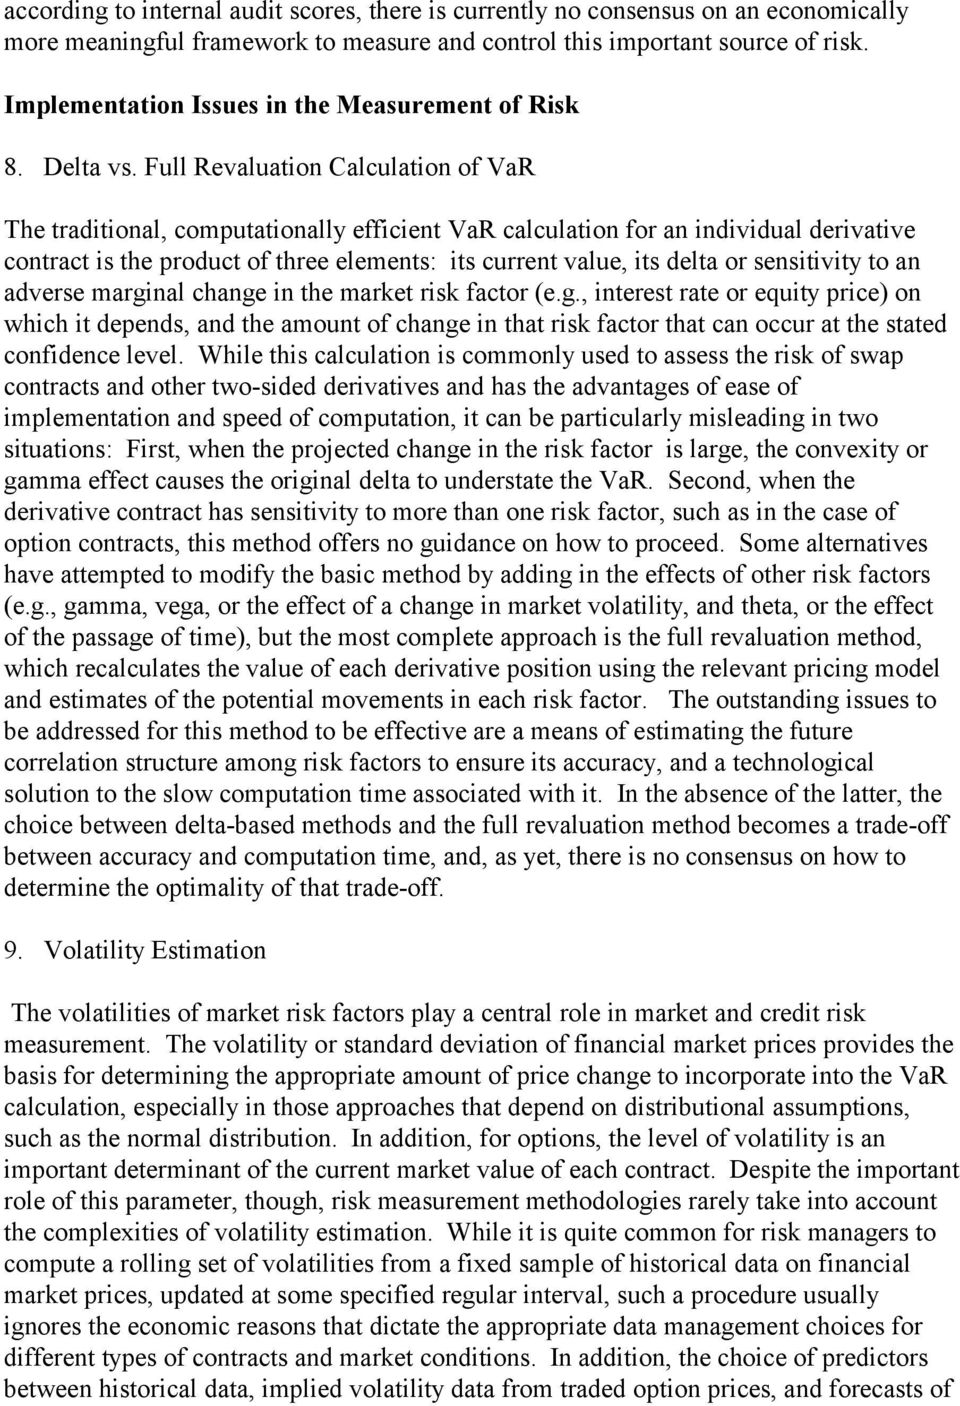 Full Revaluation Calculation of VaR The traditional, computationally efficient VaR calculation for an individual derivative contract is the product of three elements: its current value, its delta or